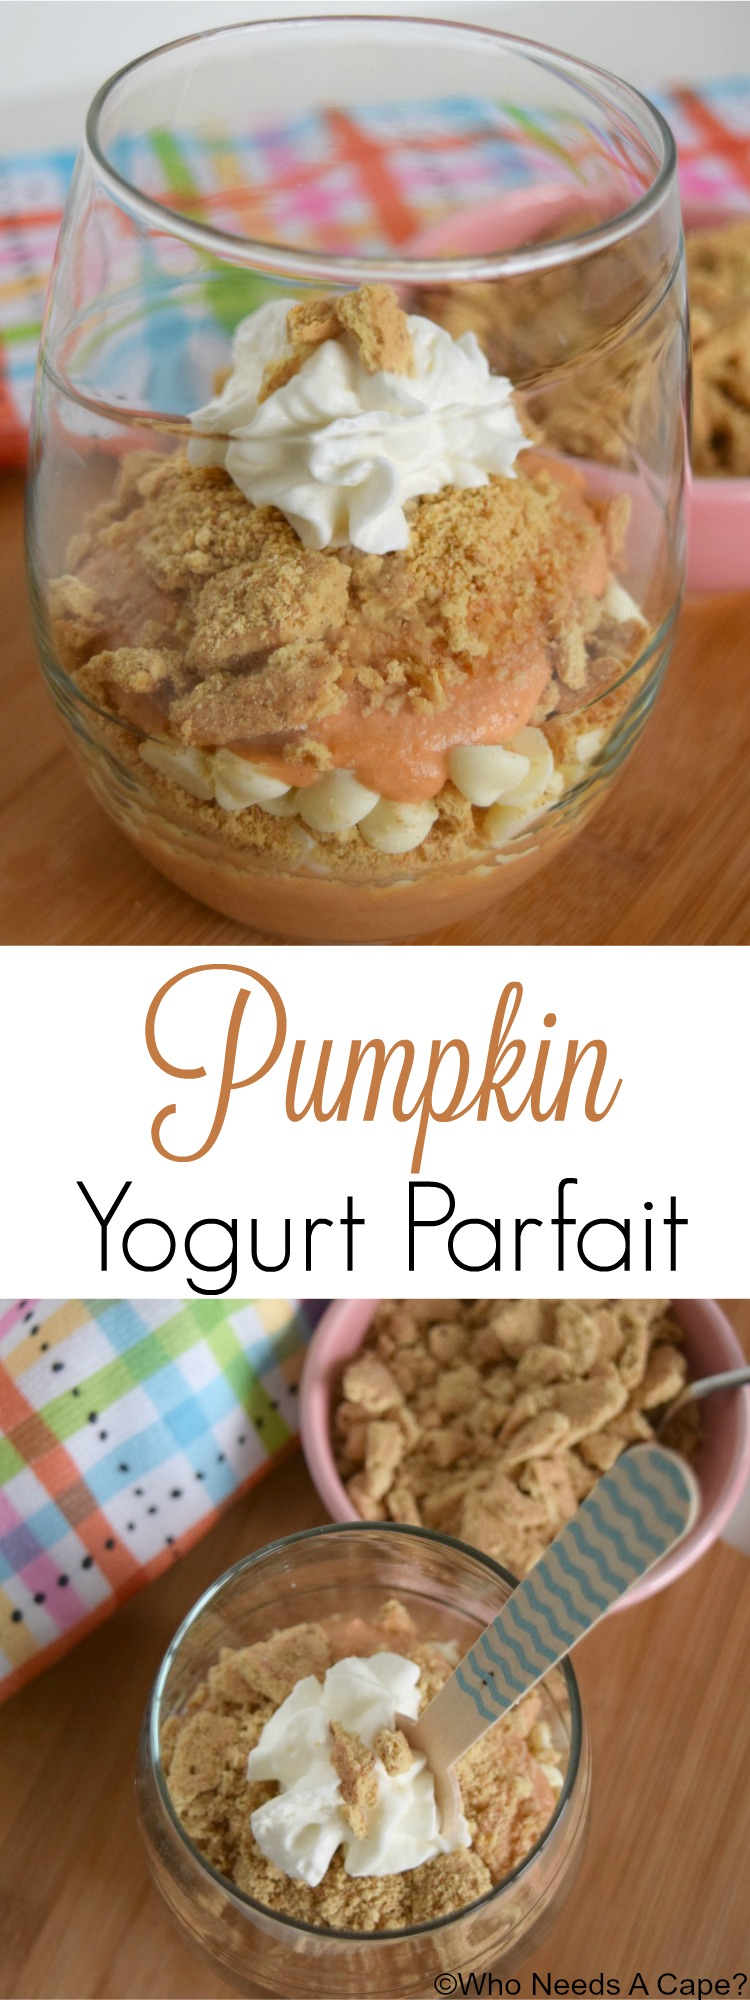 This easy to prepare Pumpkin Yogurt Parfait will satisfy your sweet tooth! Use your leftover holiday pumpkin puree, you'll have a easy snack in no time.